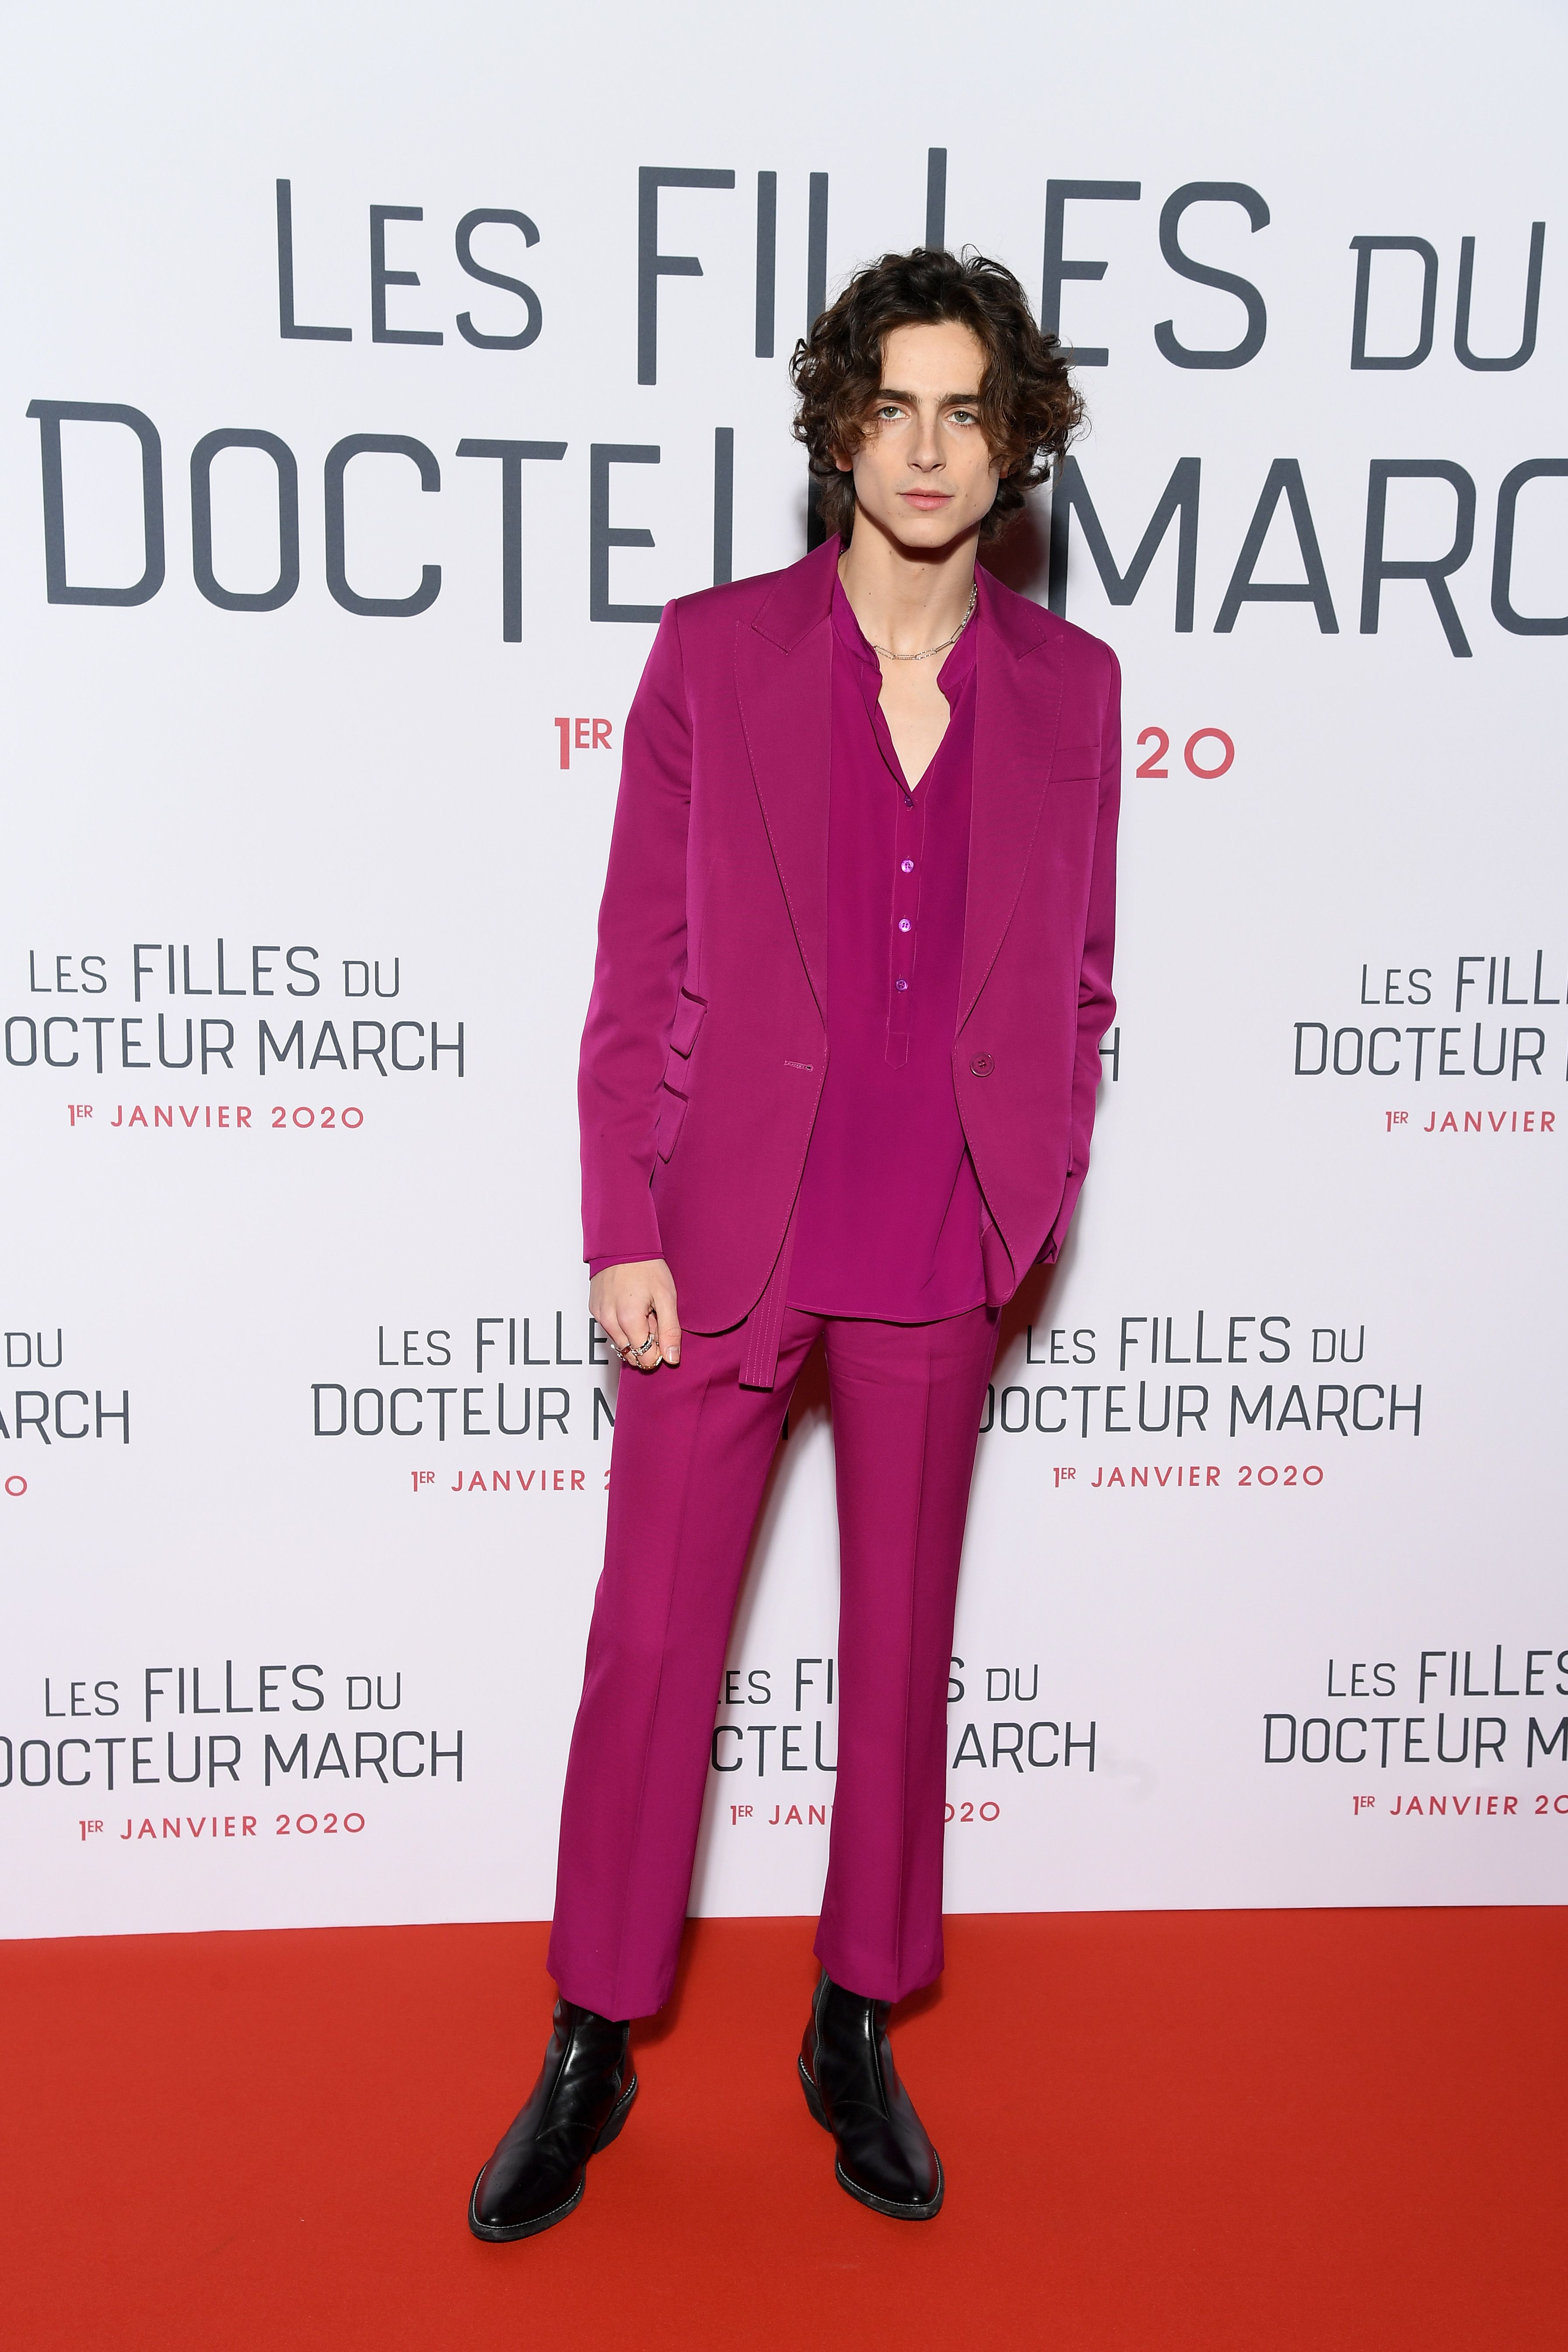 Timothée Chalamet Knows How to Wear a Pink Suit Better Than Most